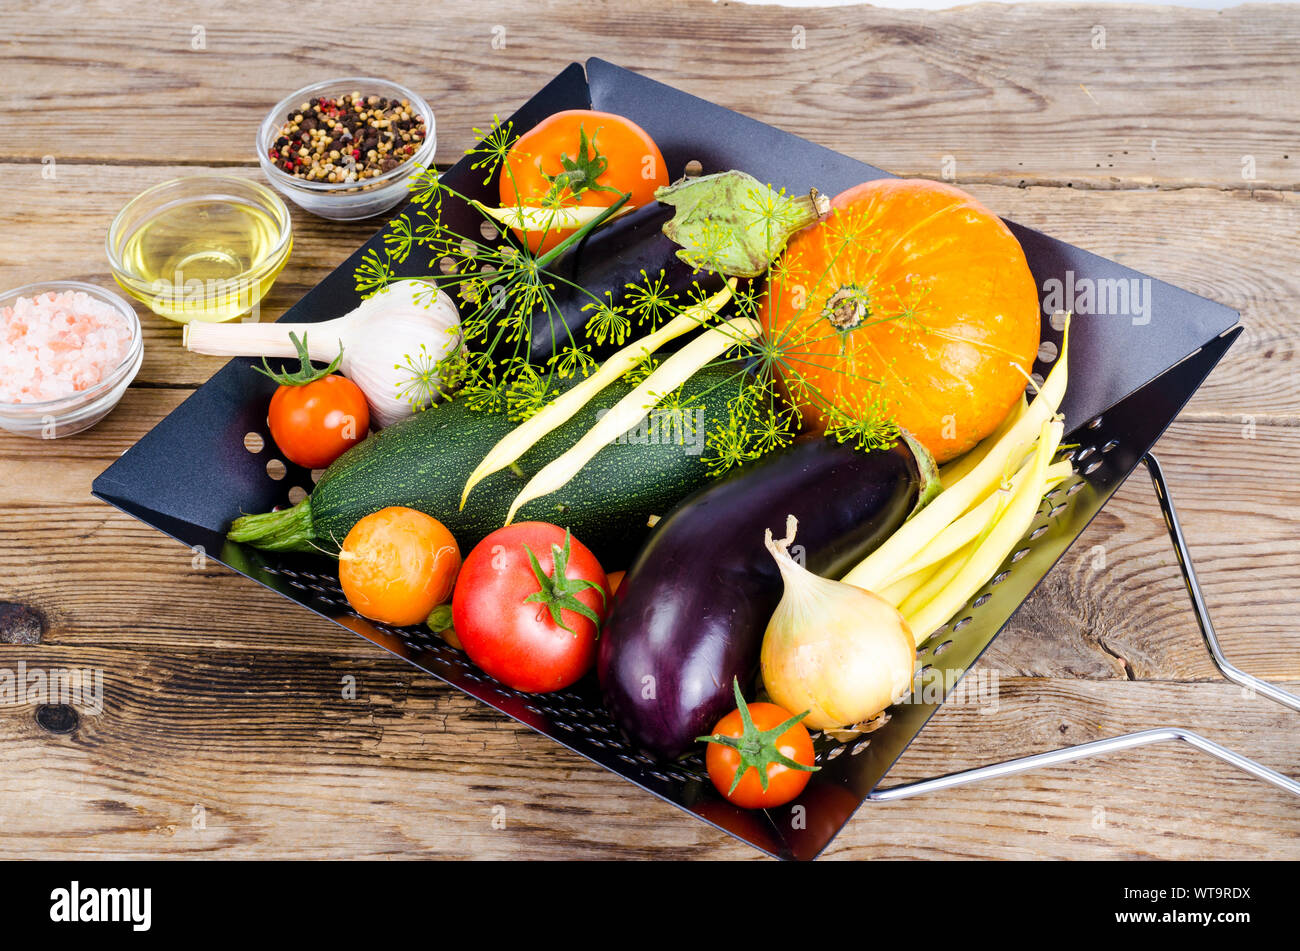 Homemade bio vegetables for baking. Studio Photo Stock Photo